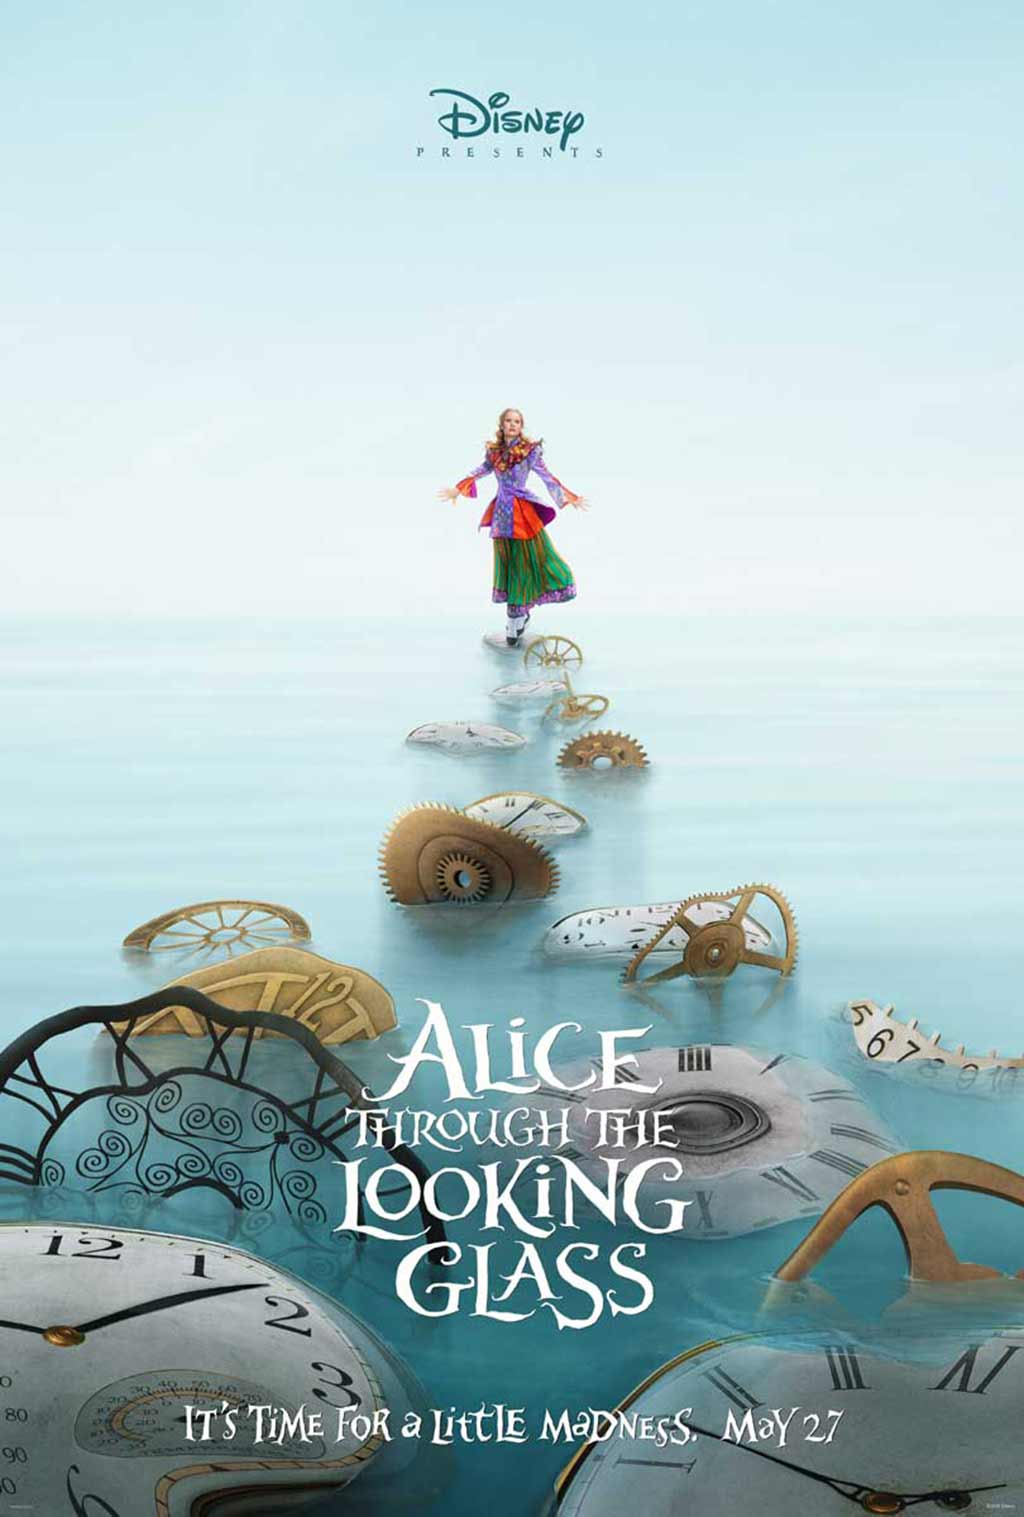 Alice Through the Looking Glass teaser movie poster